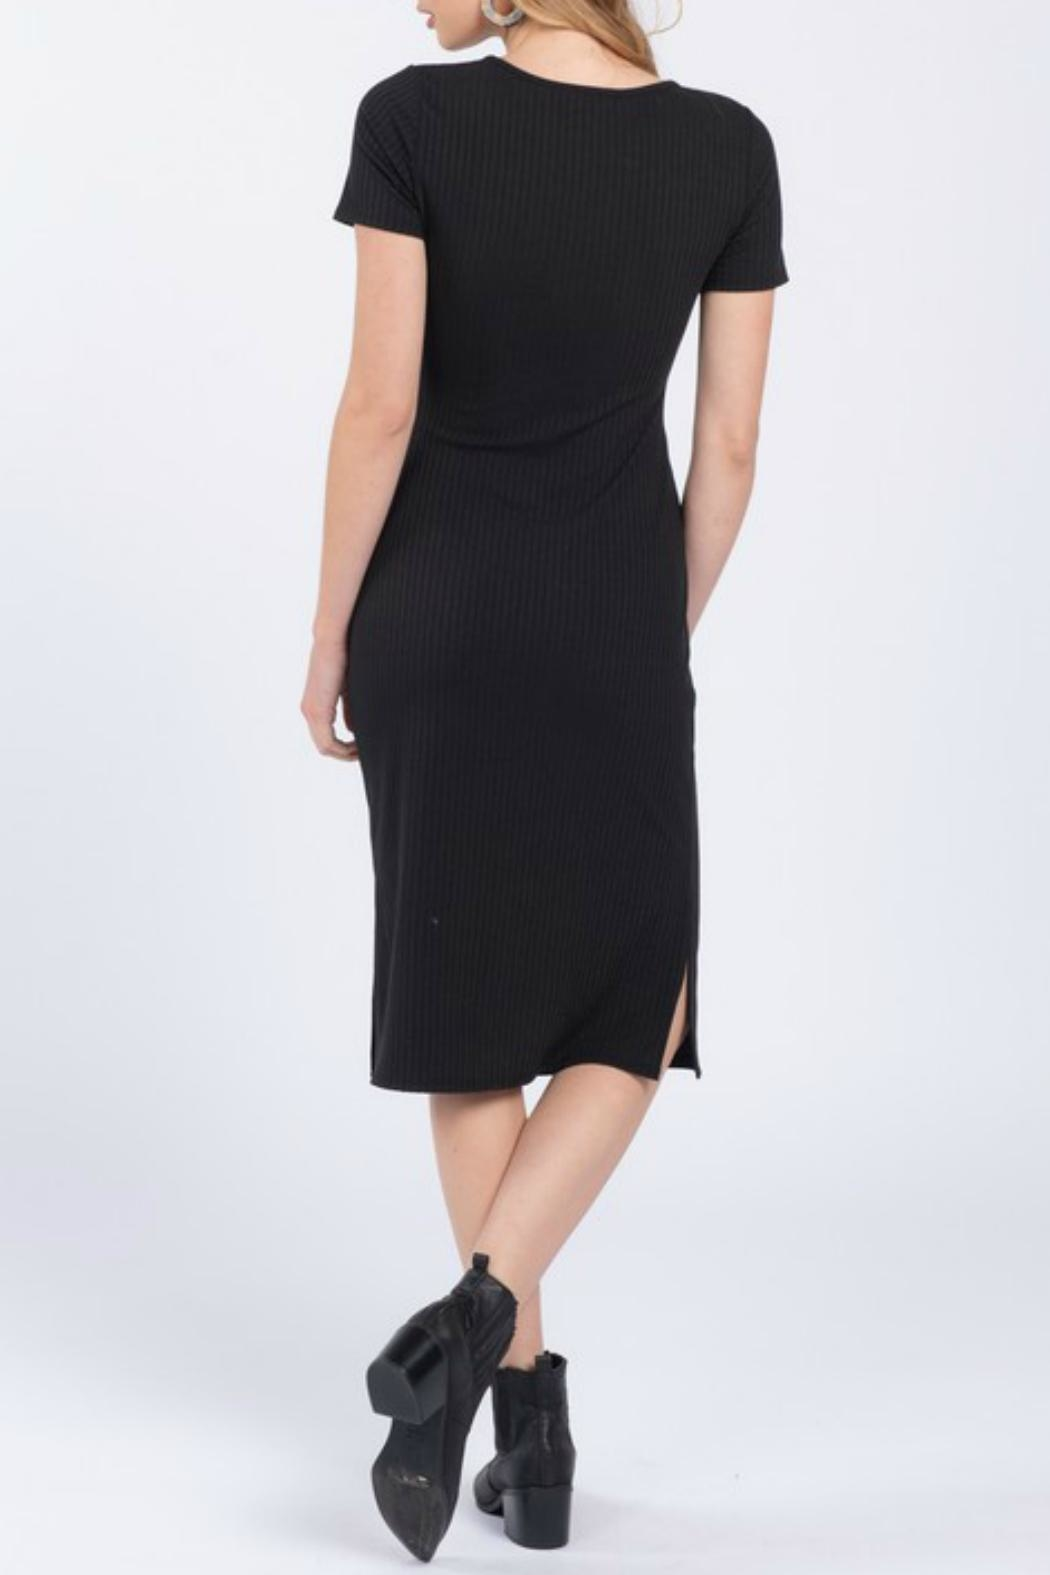 Everly Front Twist Dress - Front Full Image